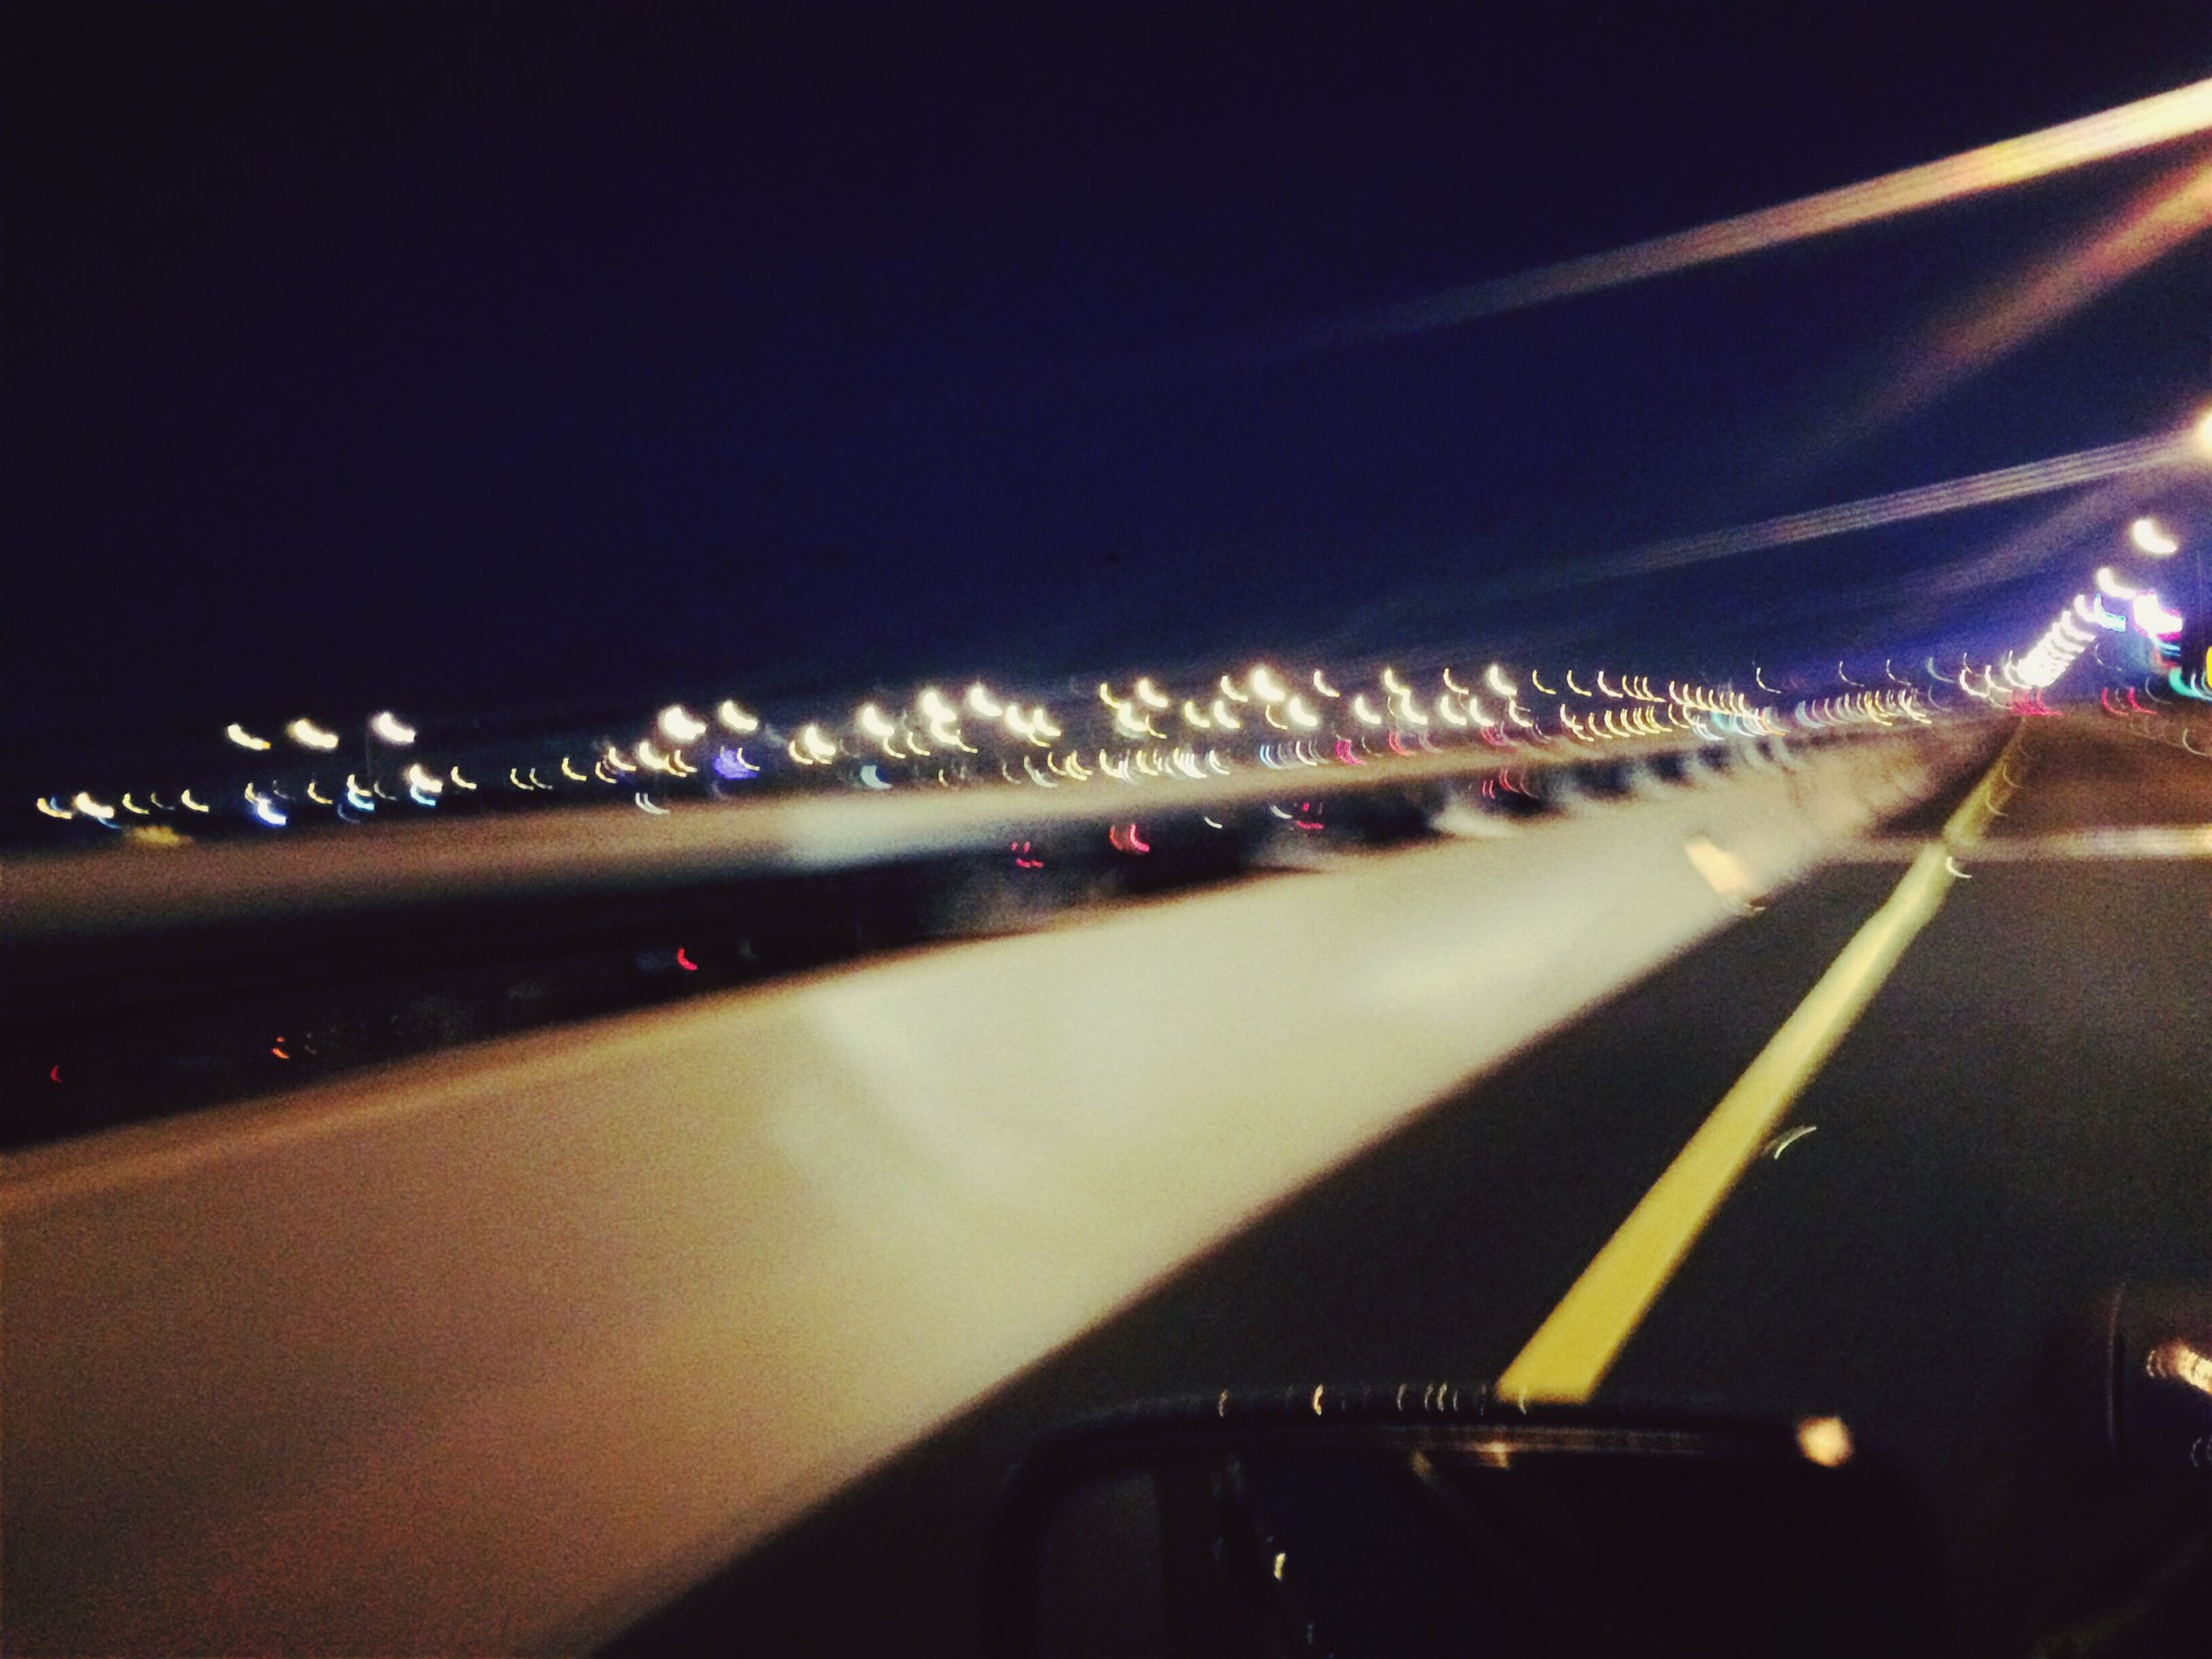 illuminated, transportation, night, road, mode of transport, road marking, car, the way forward, lighting equipment, land vehicle, diminishing perspective, street light, street, on the move, no people, highway, vanishing point, traffic, in a row, light - natural phenomenon